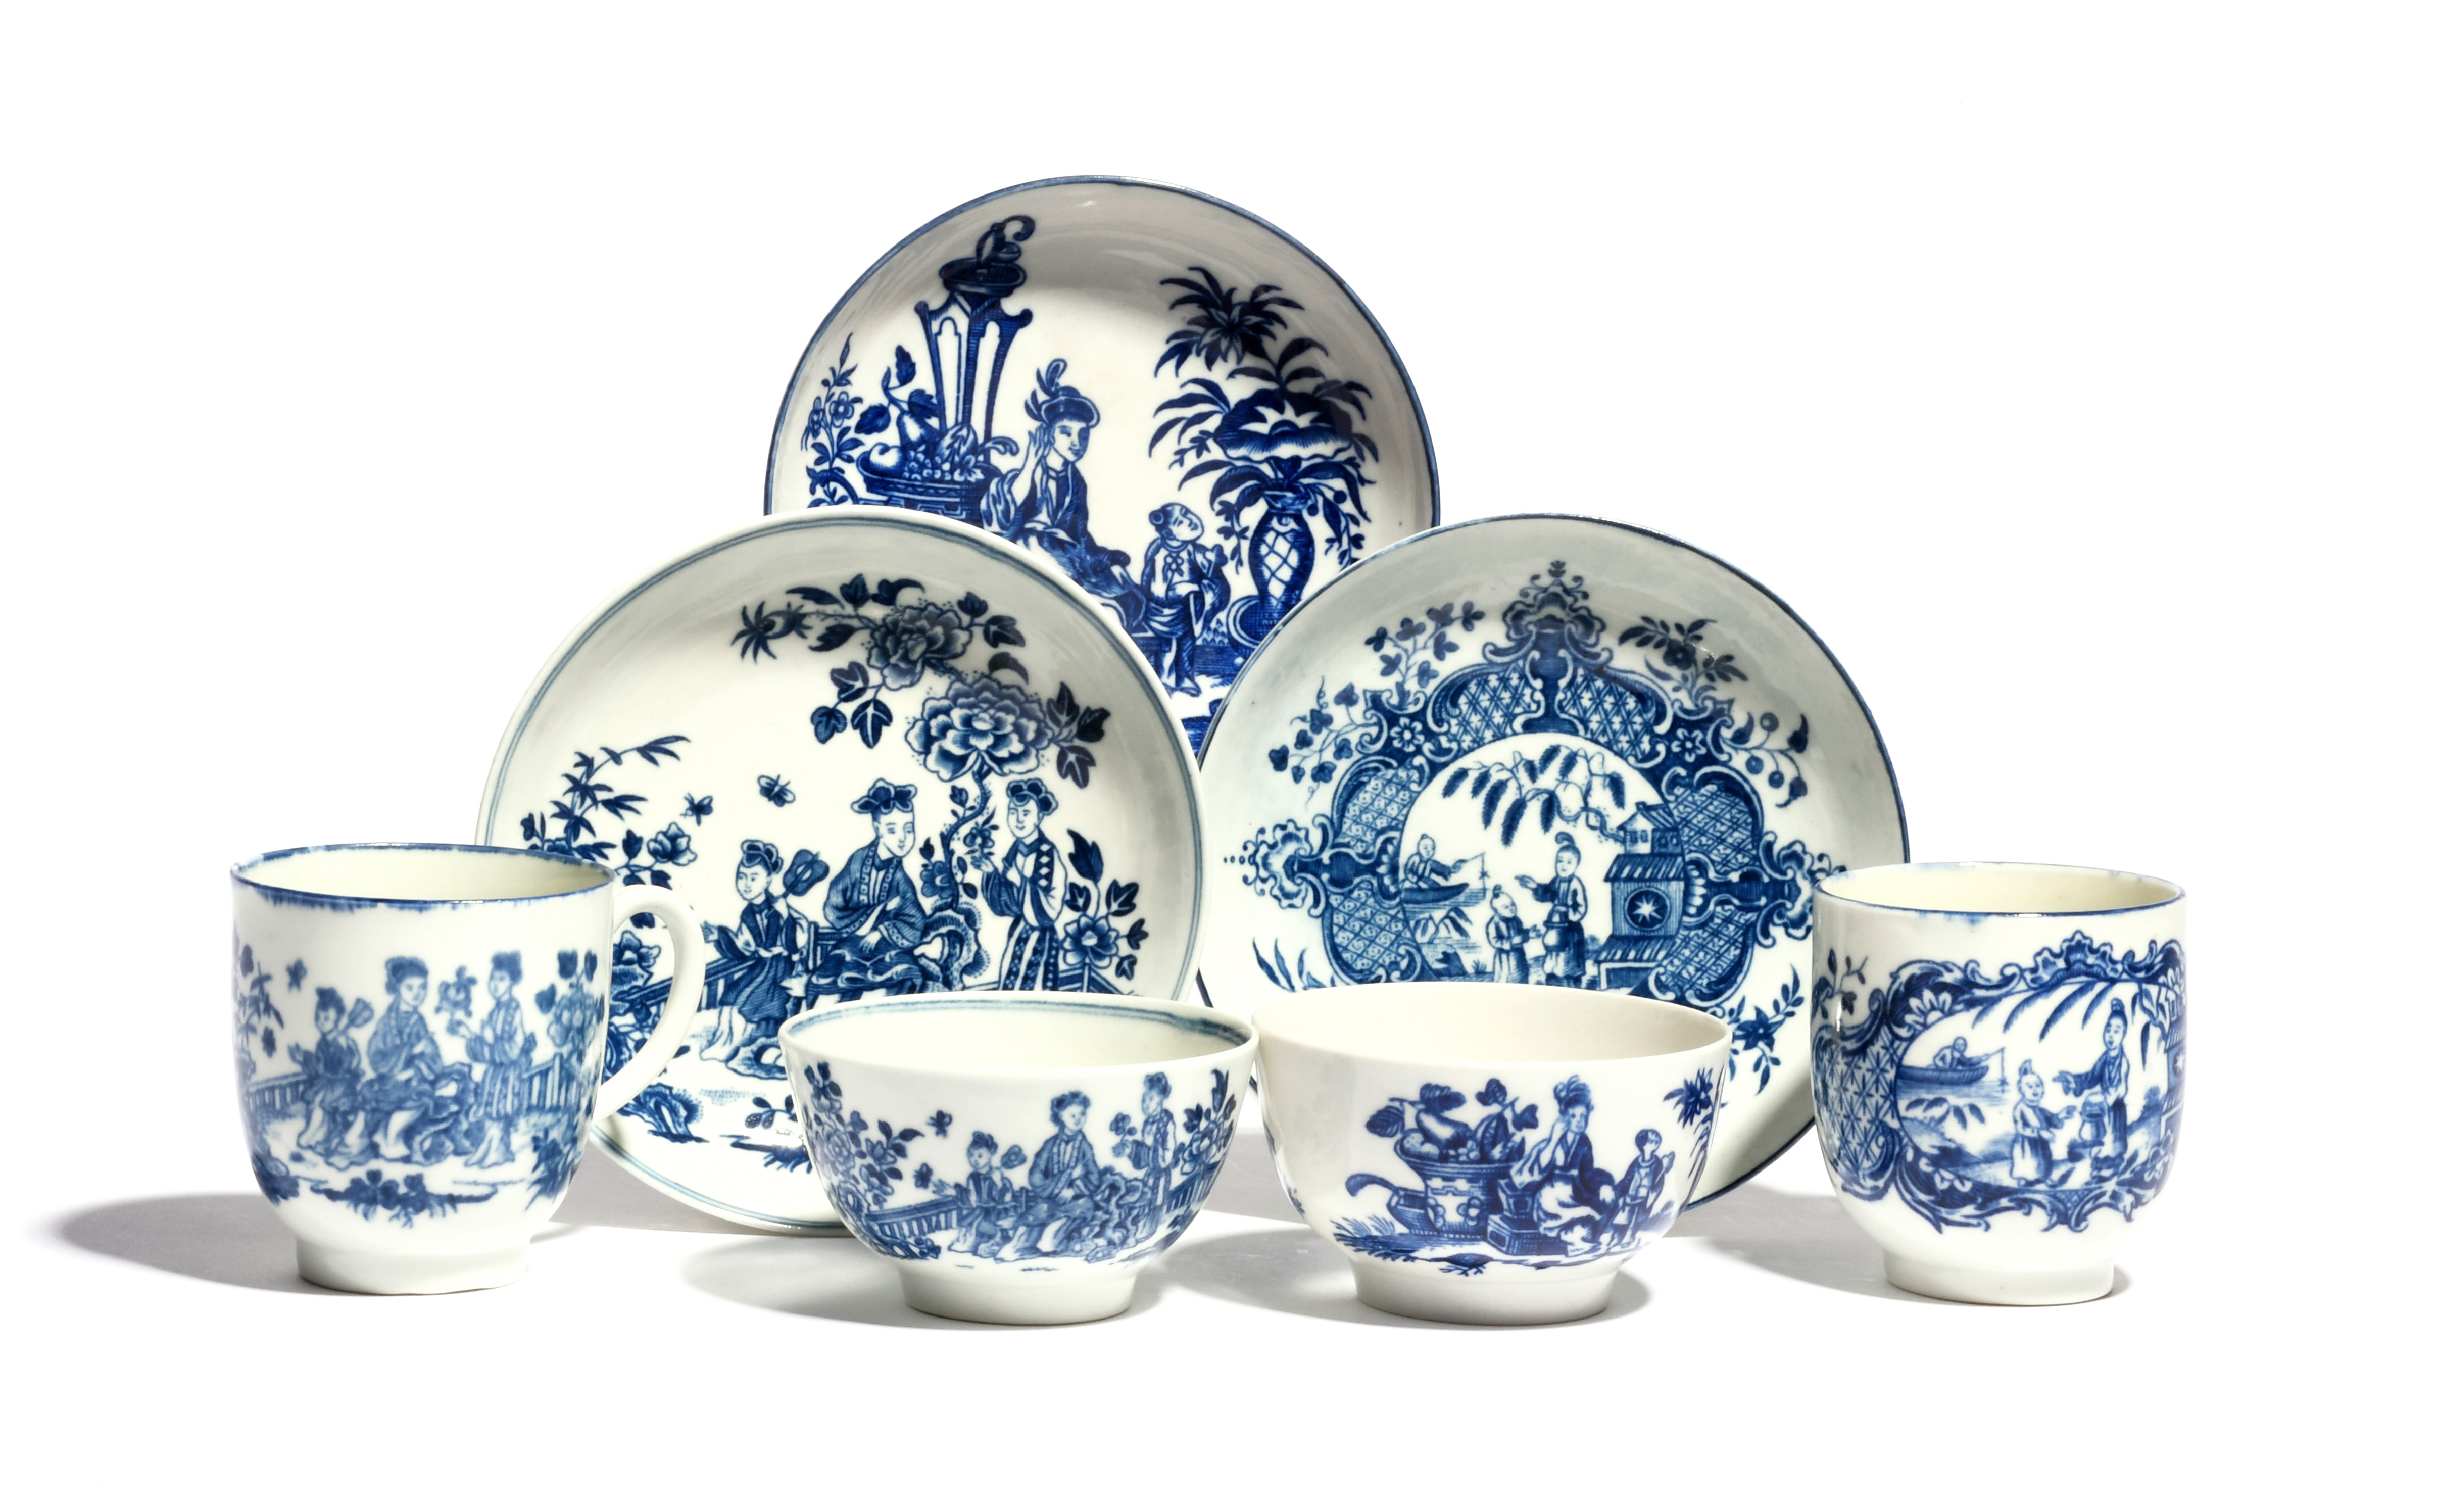 A group of Worcester blue and white teawares c.1775-80, decorated with Chinese figures, including